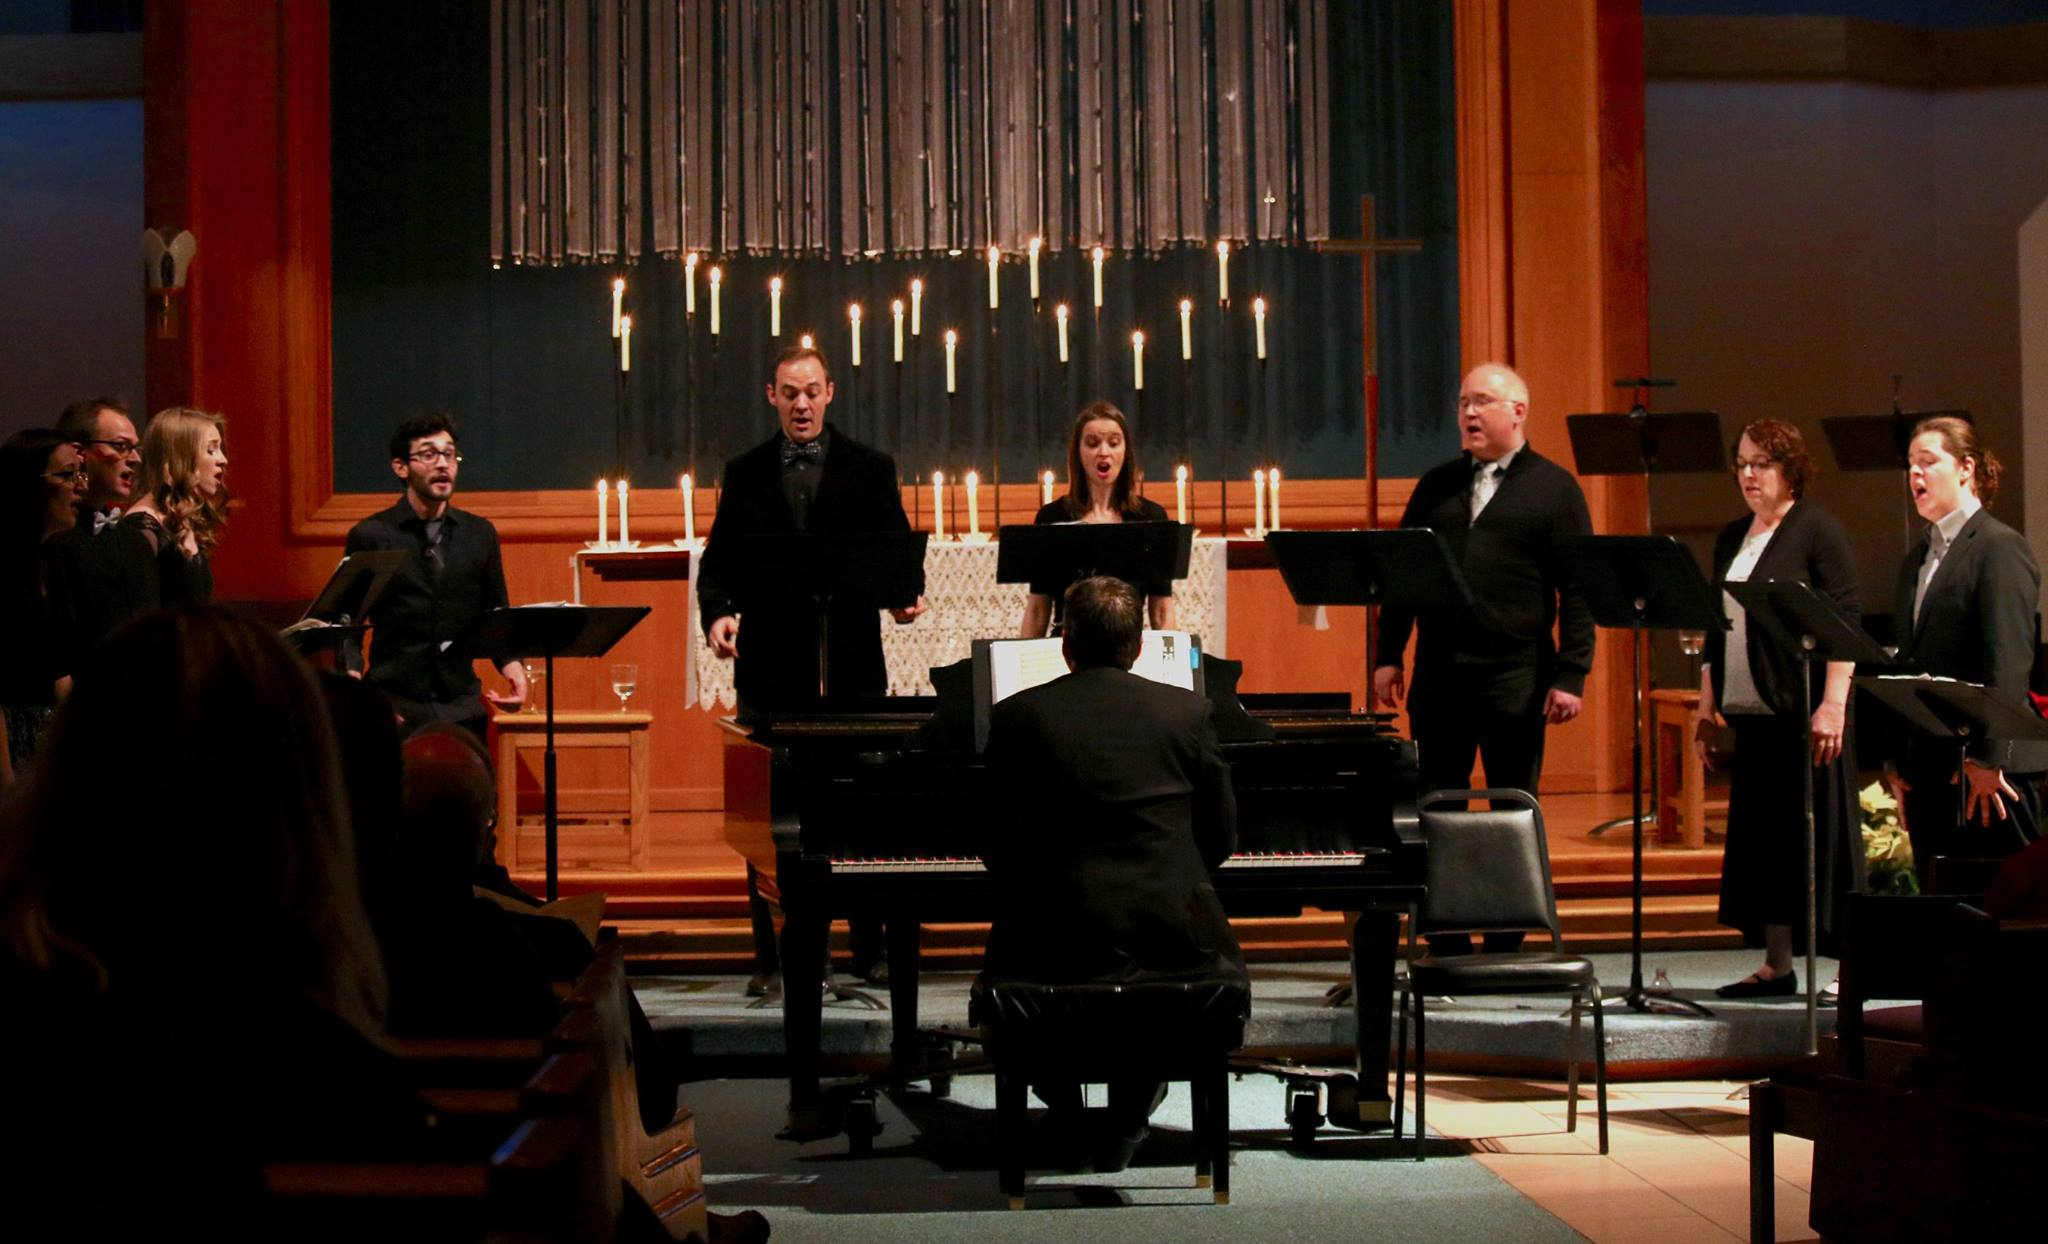 reSound, a Northwest Chamber Ensemble. reSound concert January 2017